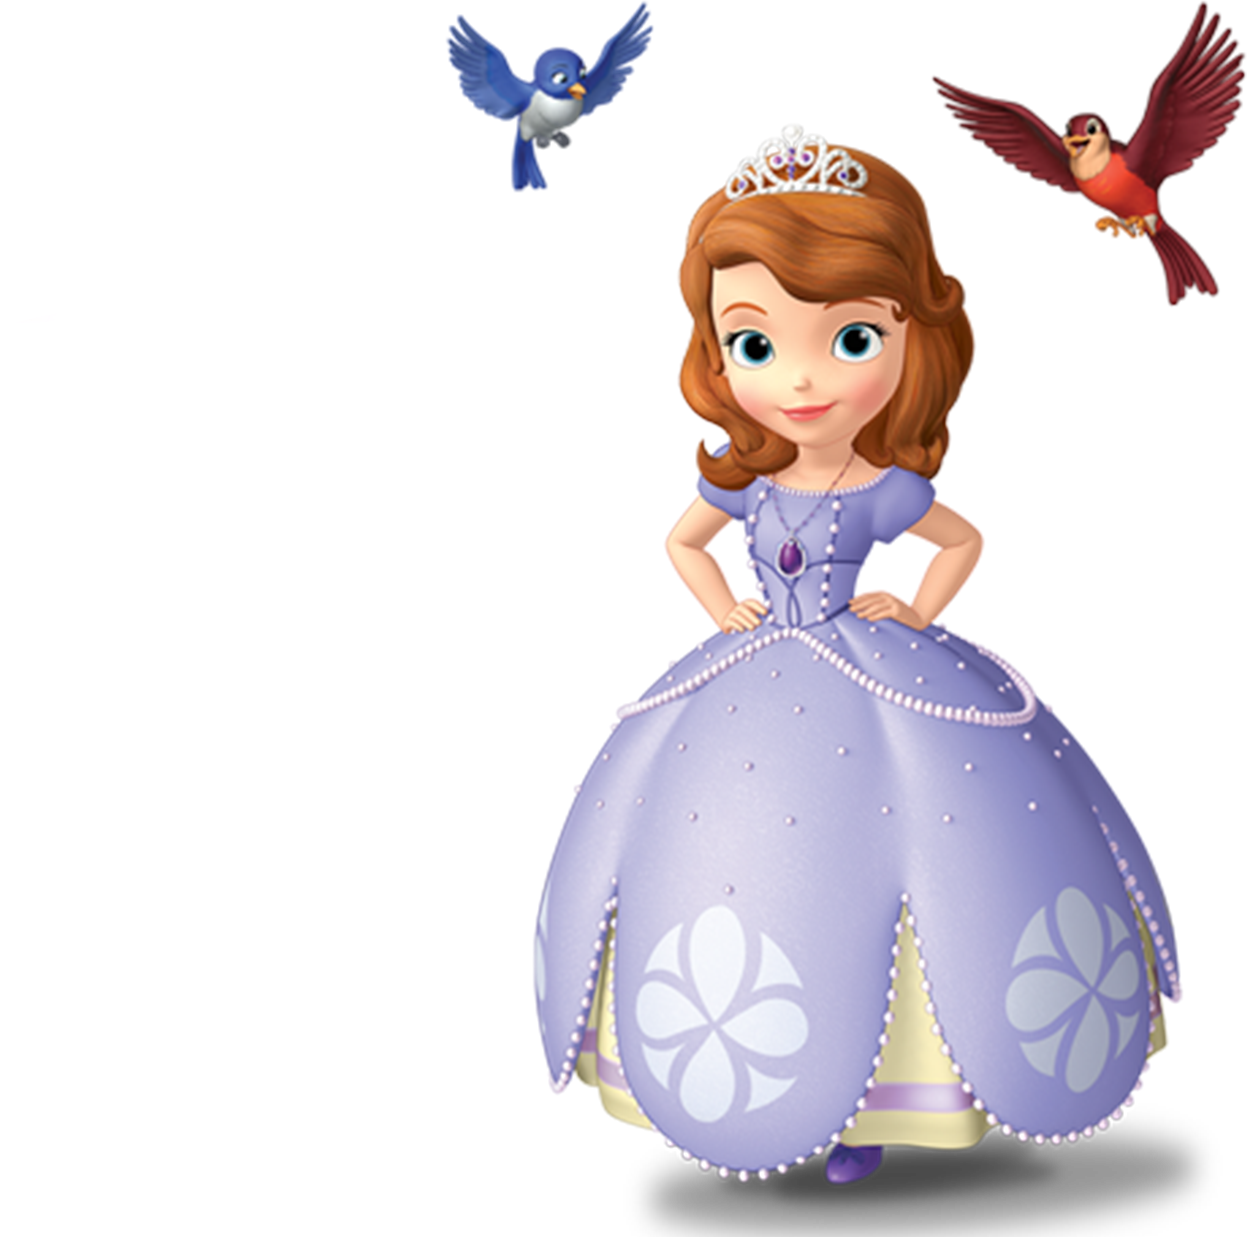 Sofia the First Free Party Printables and Images  Oh My